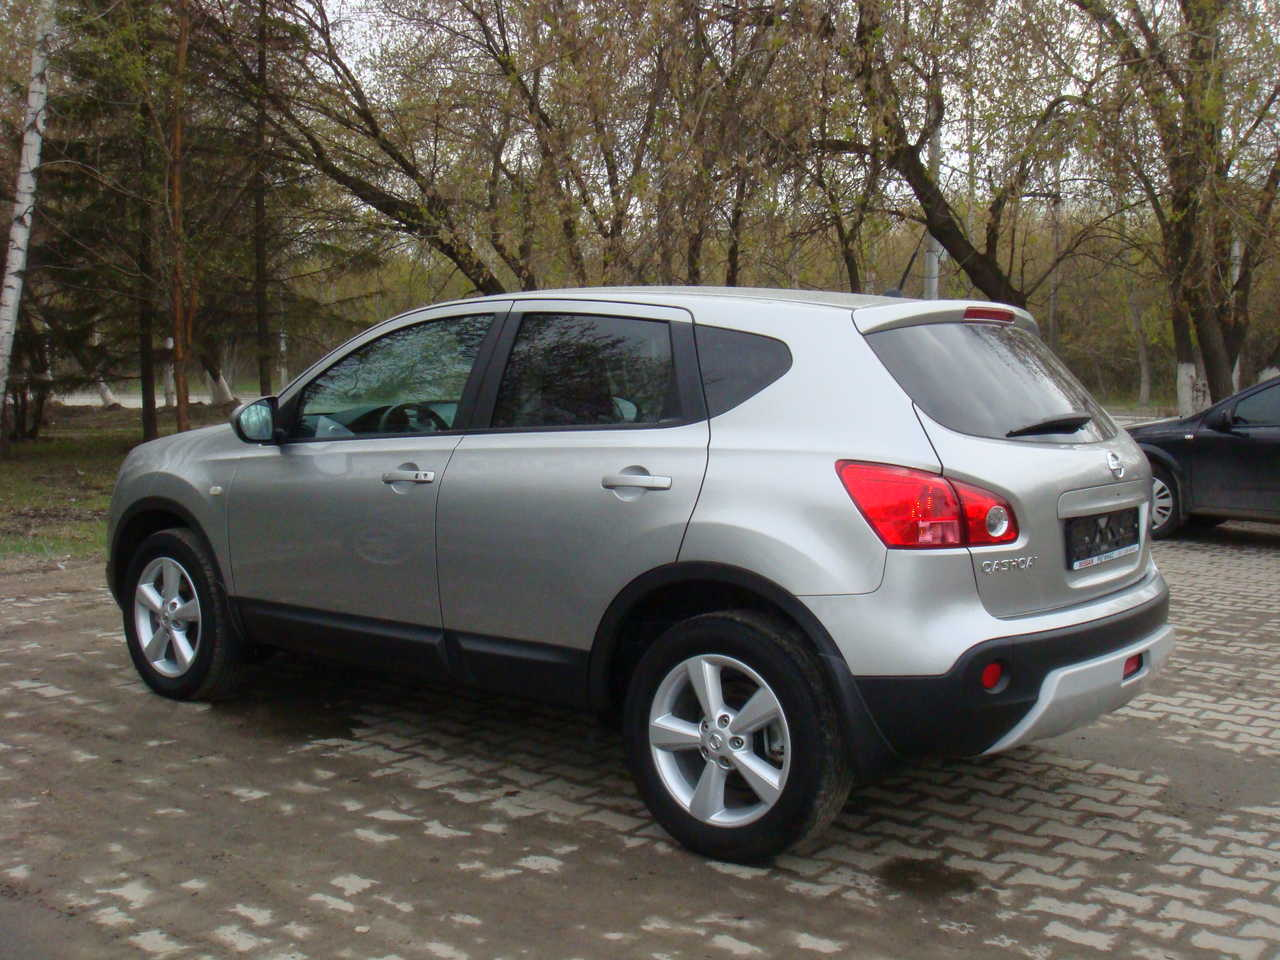 used 2009 nissan qashqai photos 2000cc gasoline automatic for sale. Black Bedroom Furniture Sets. Home Design Ideas